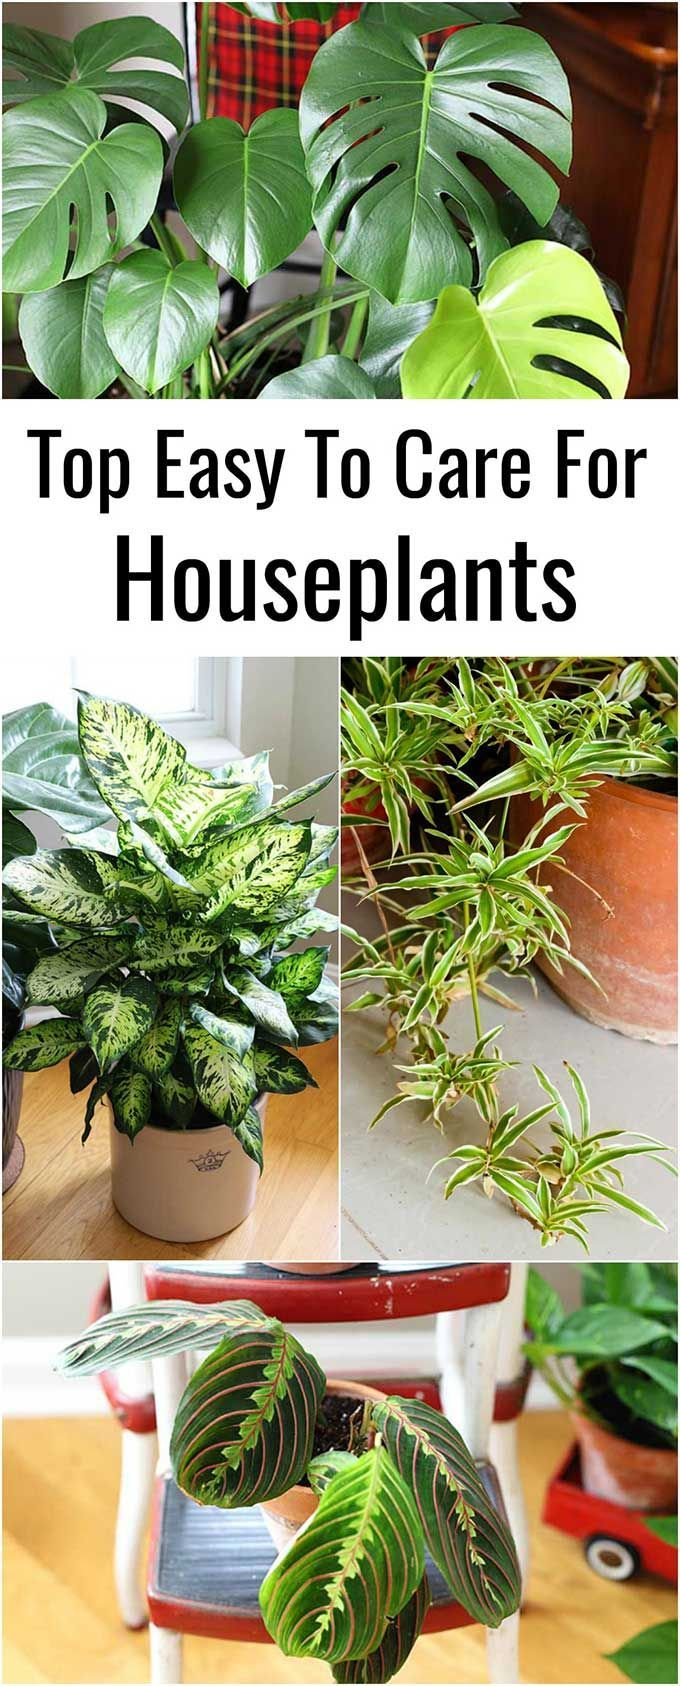 9 Easy To Care For Houseplants